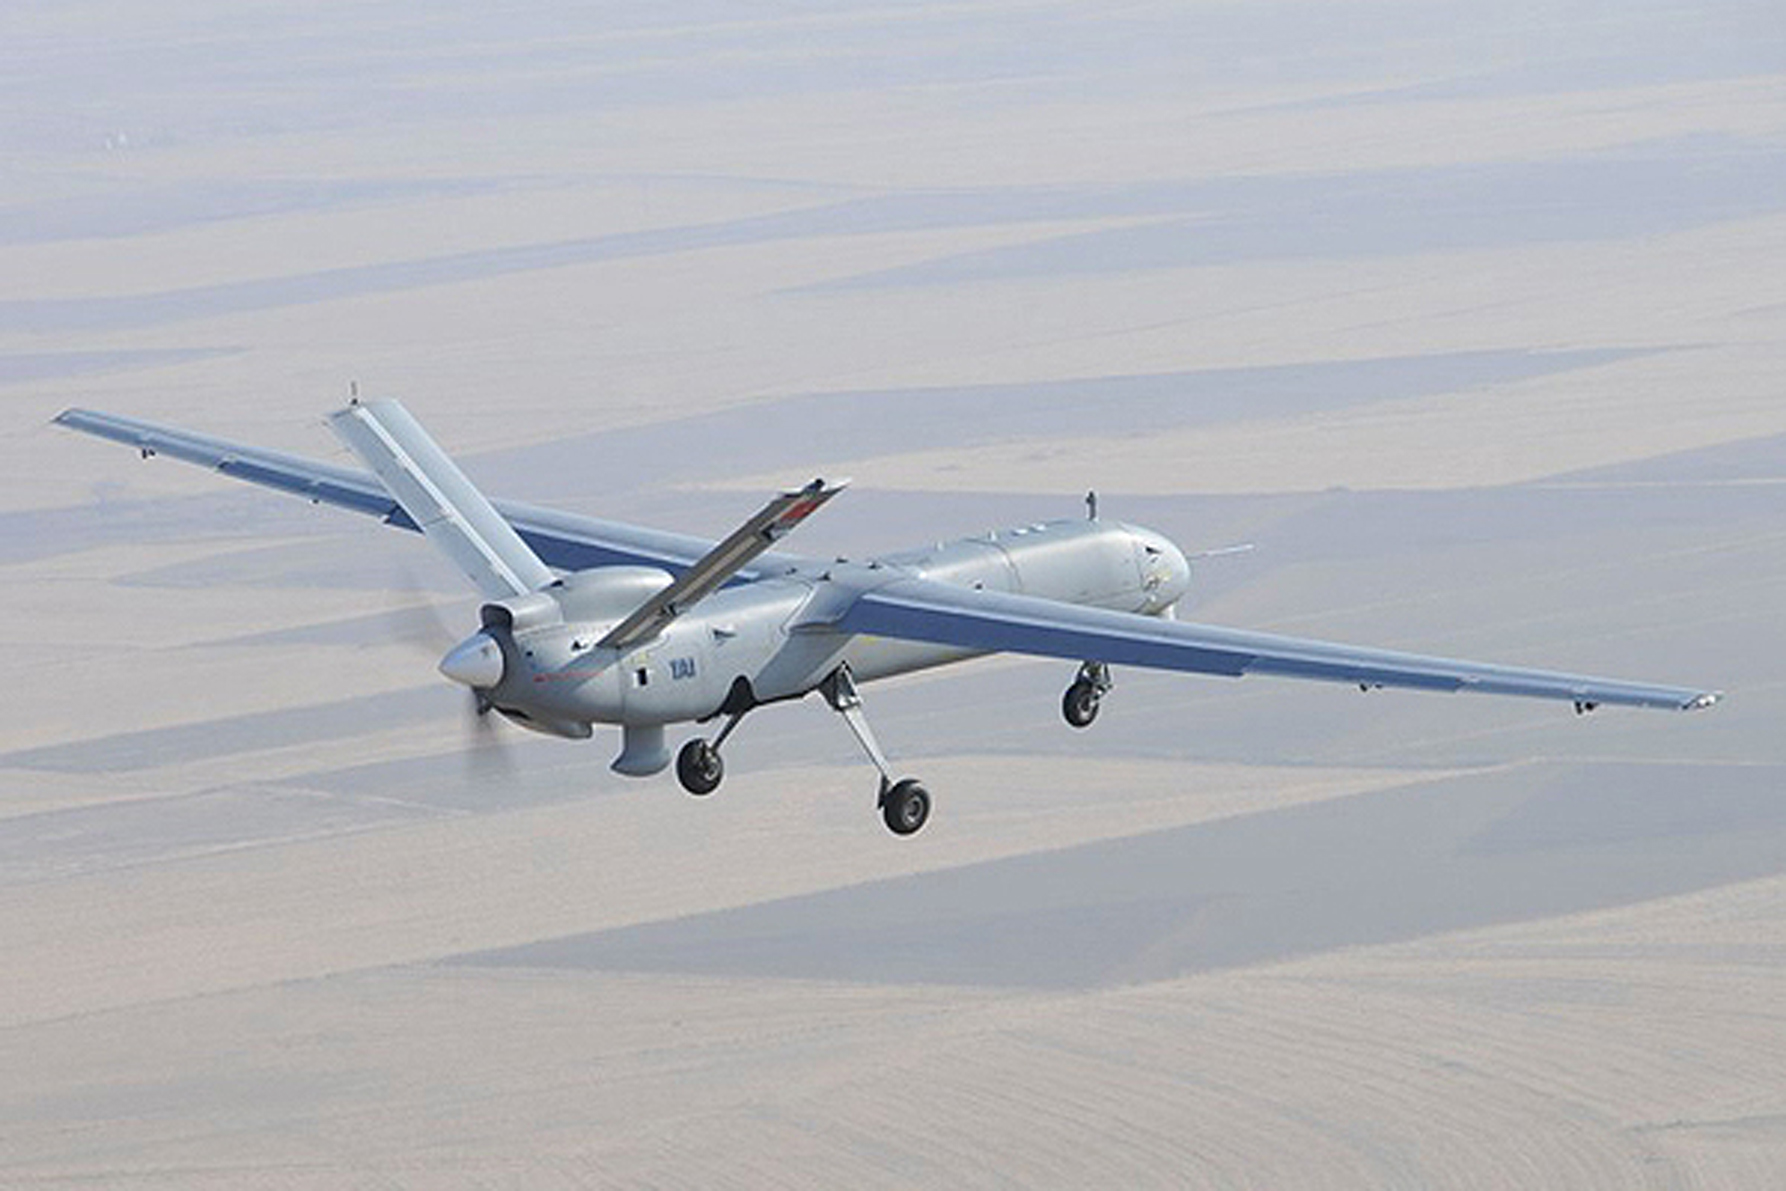 Turkish SSM to purchase Anka UAV